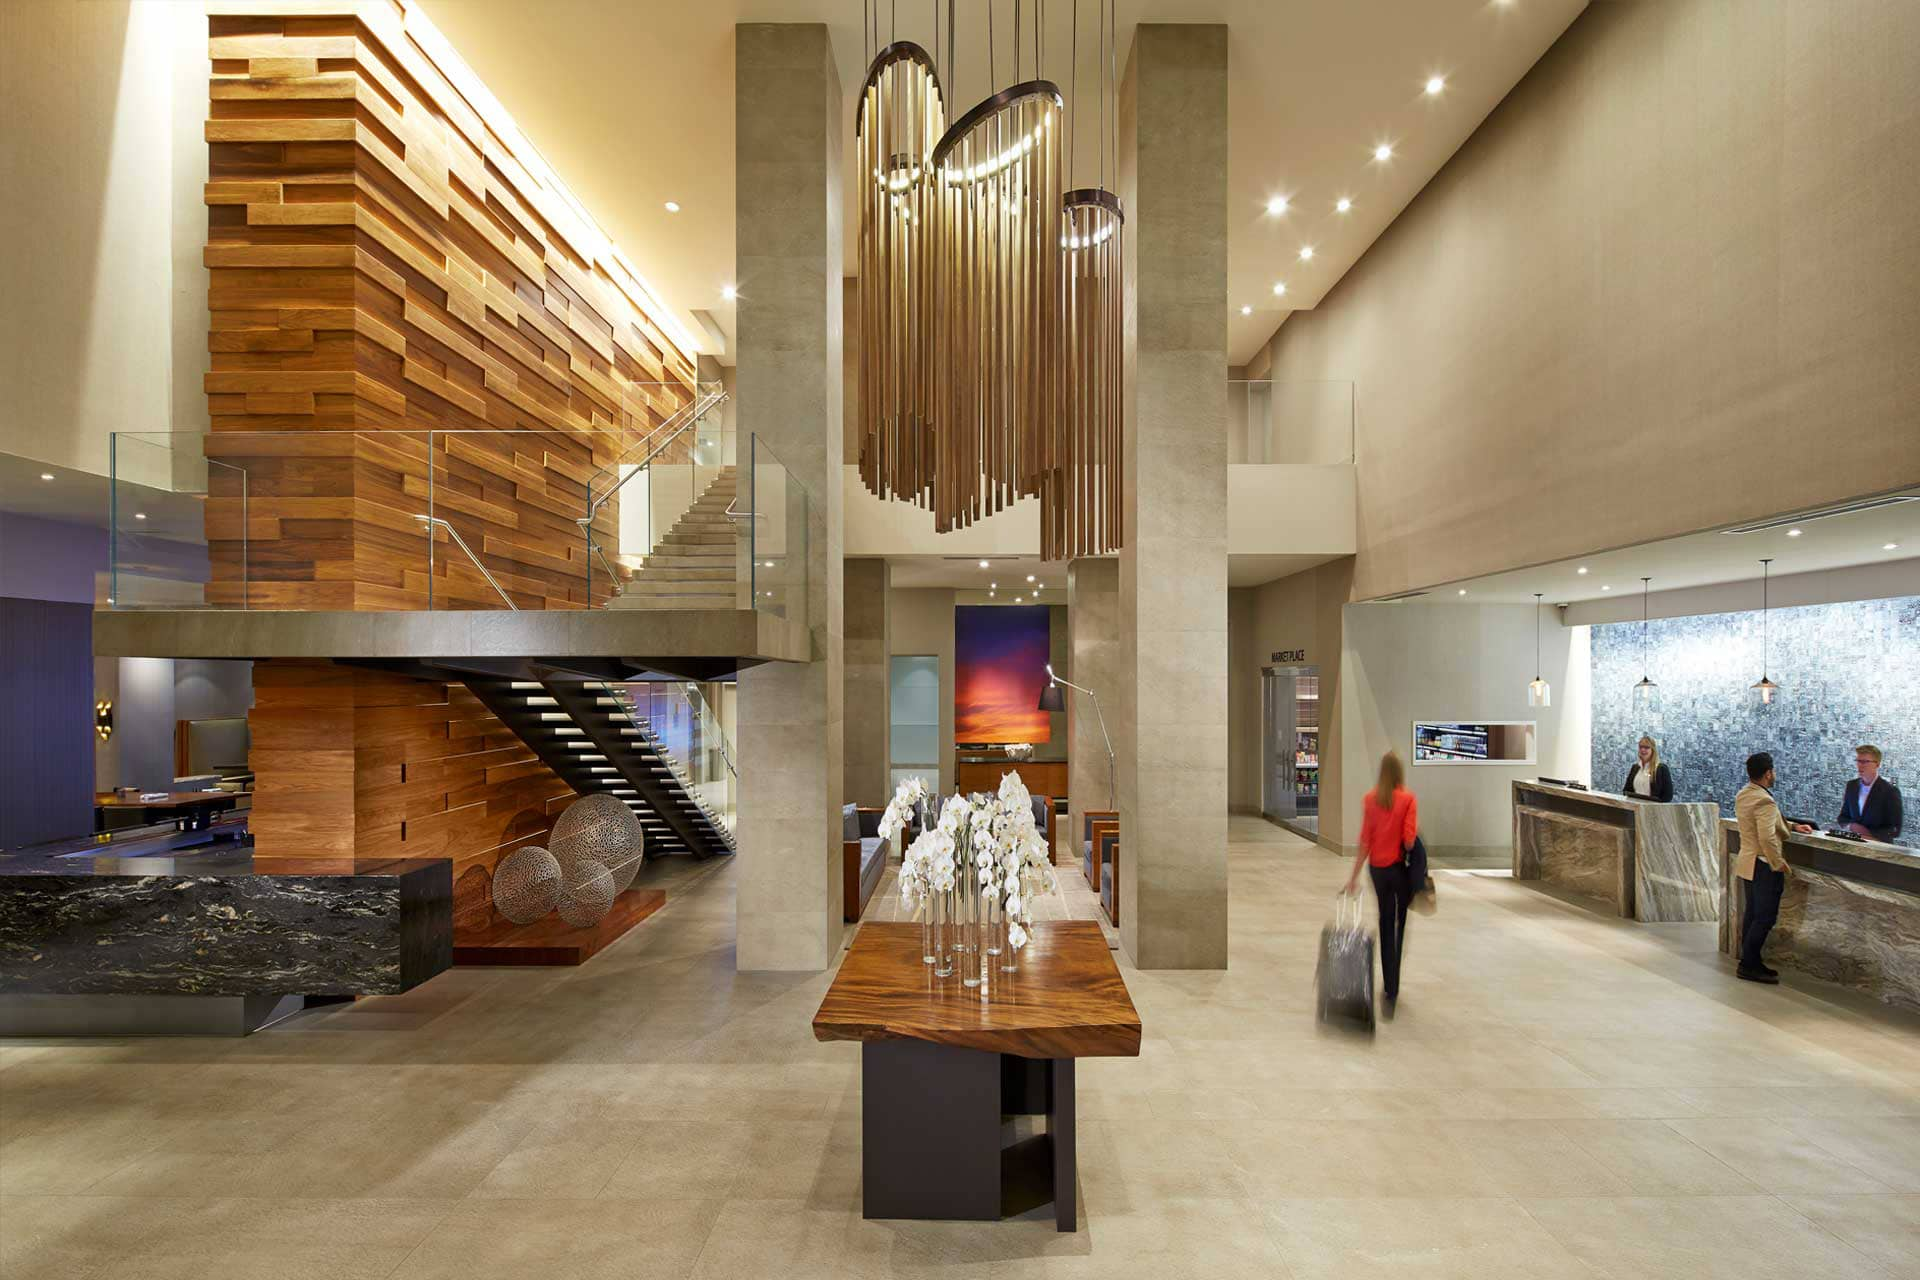 The lobby of Hilton San Diego Mission Valley hotel.